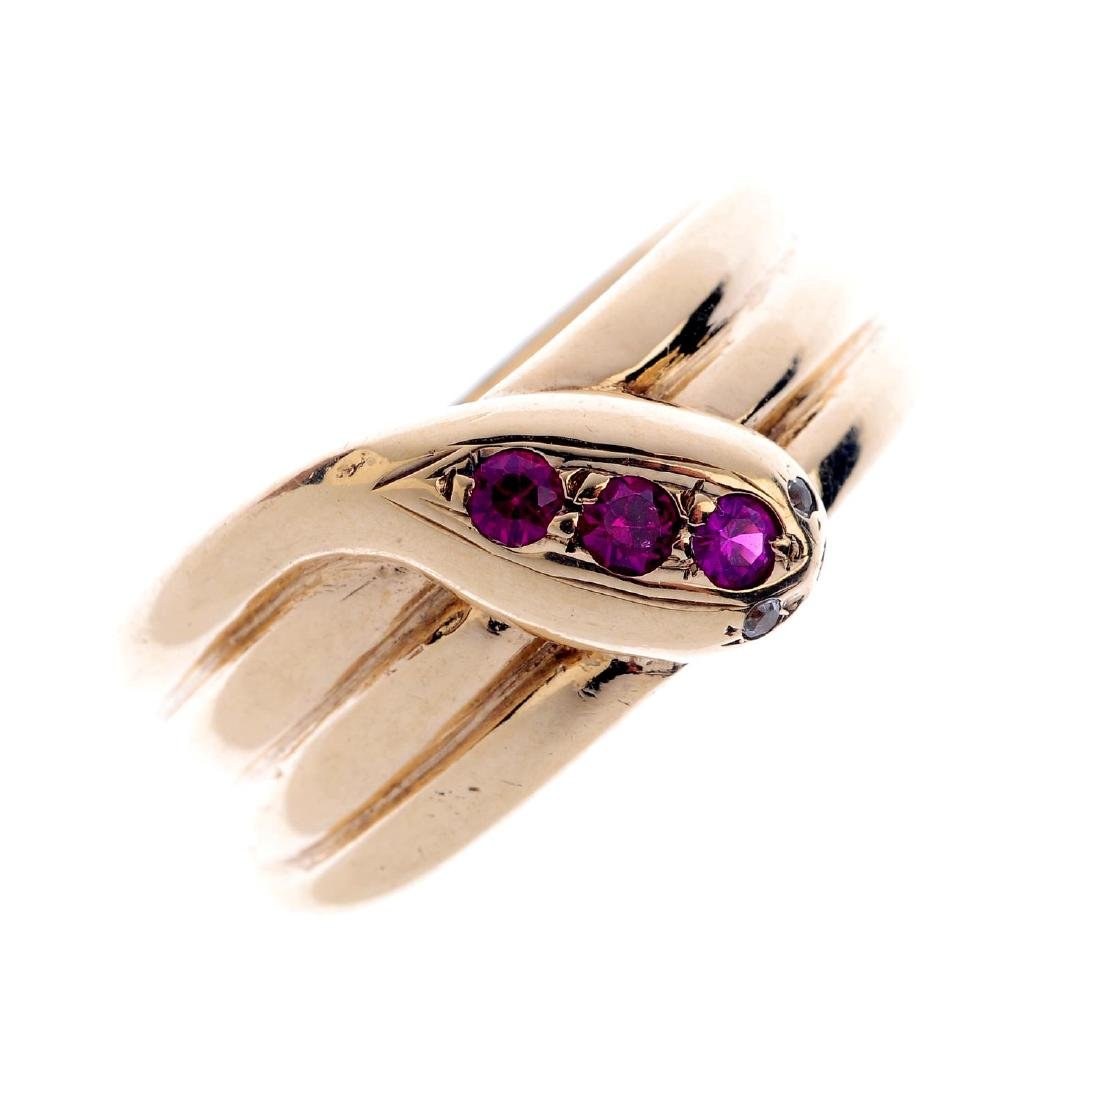 A 9ct gold synthetic ruby snake ring. Designed as a